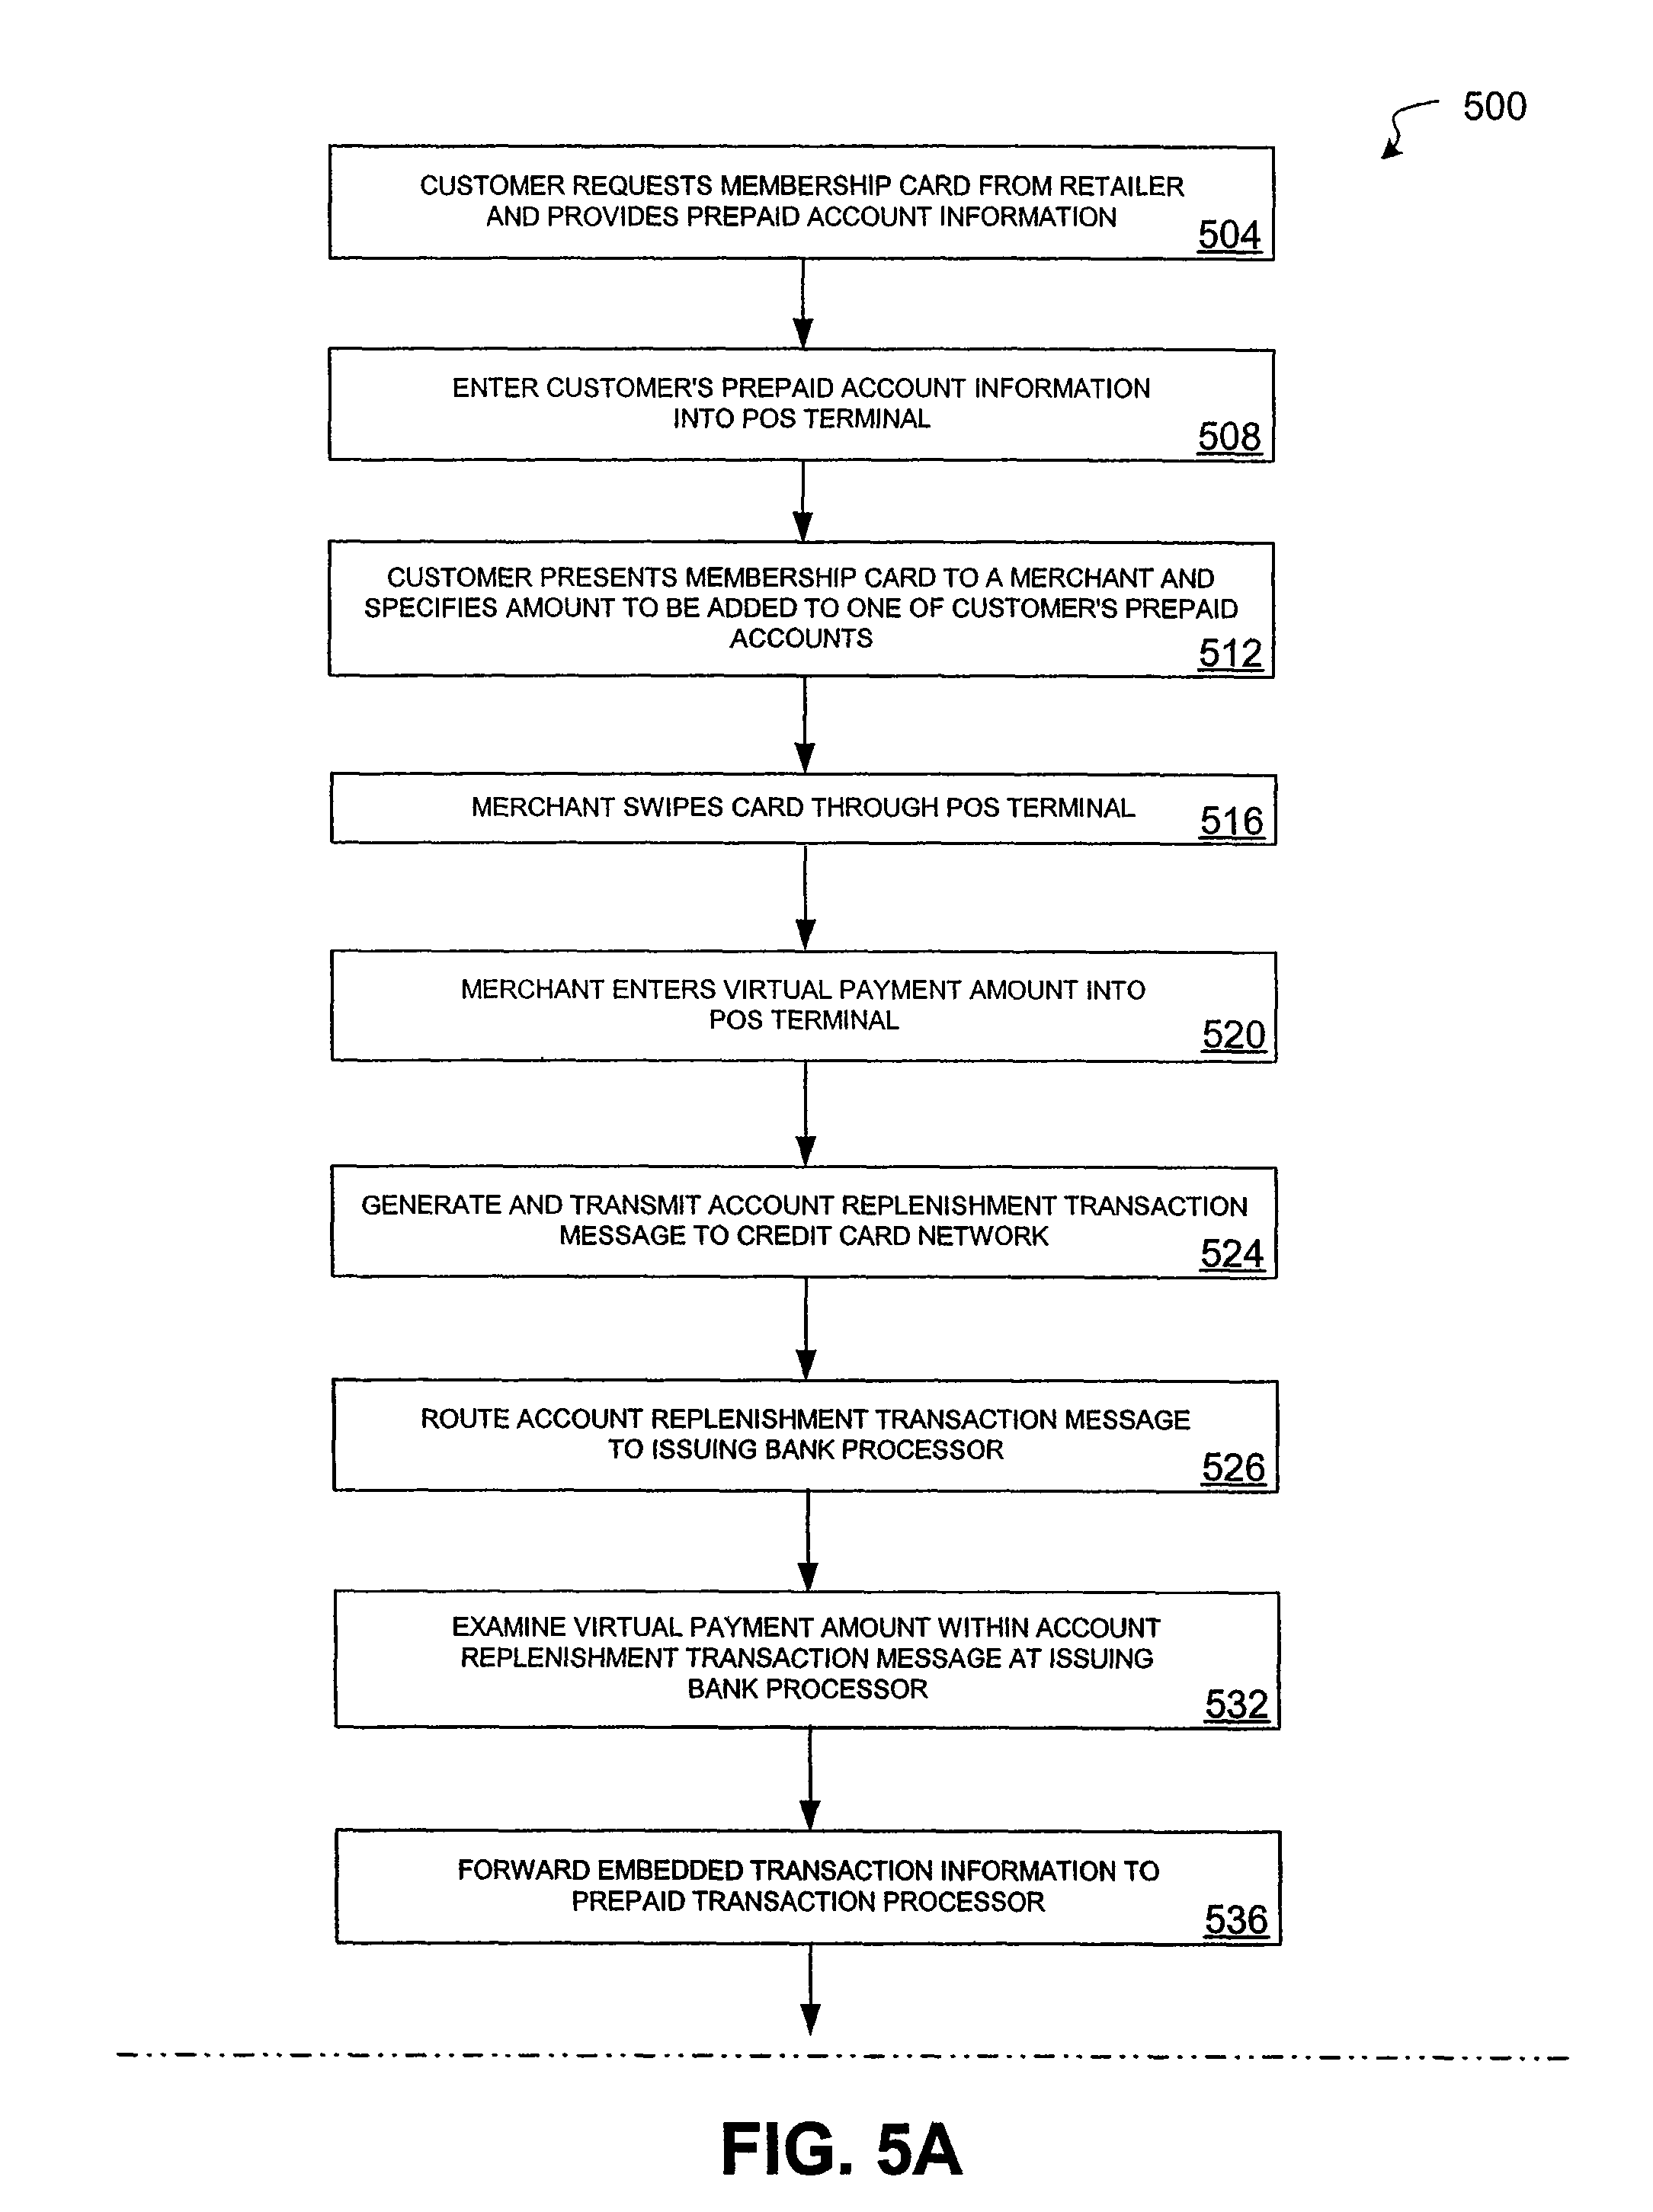 US8967464B2 - System and method for electronic prepaid